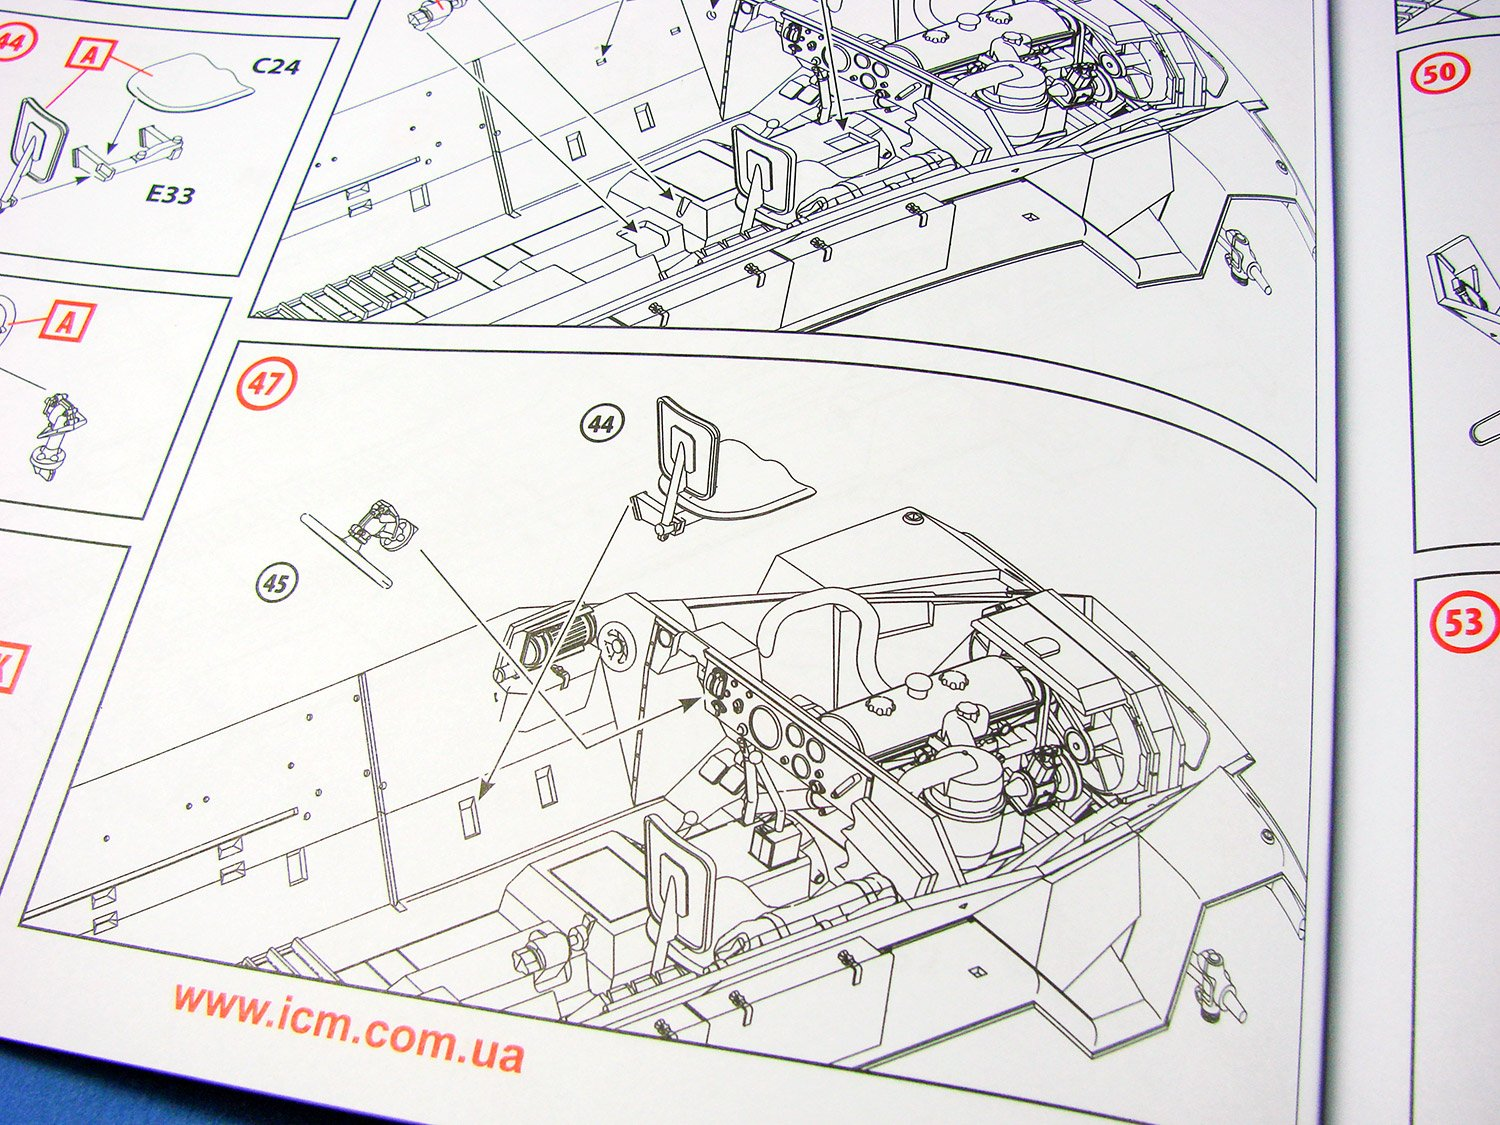 hight resolution of icm 251 wiring diagram today wiring diagram update icm251 wiring diagram 1 35 sd kfz 251